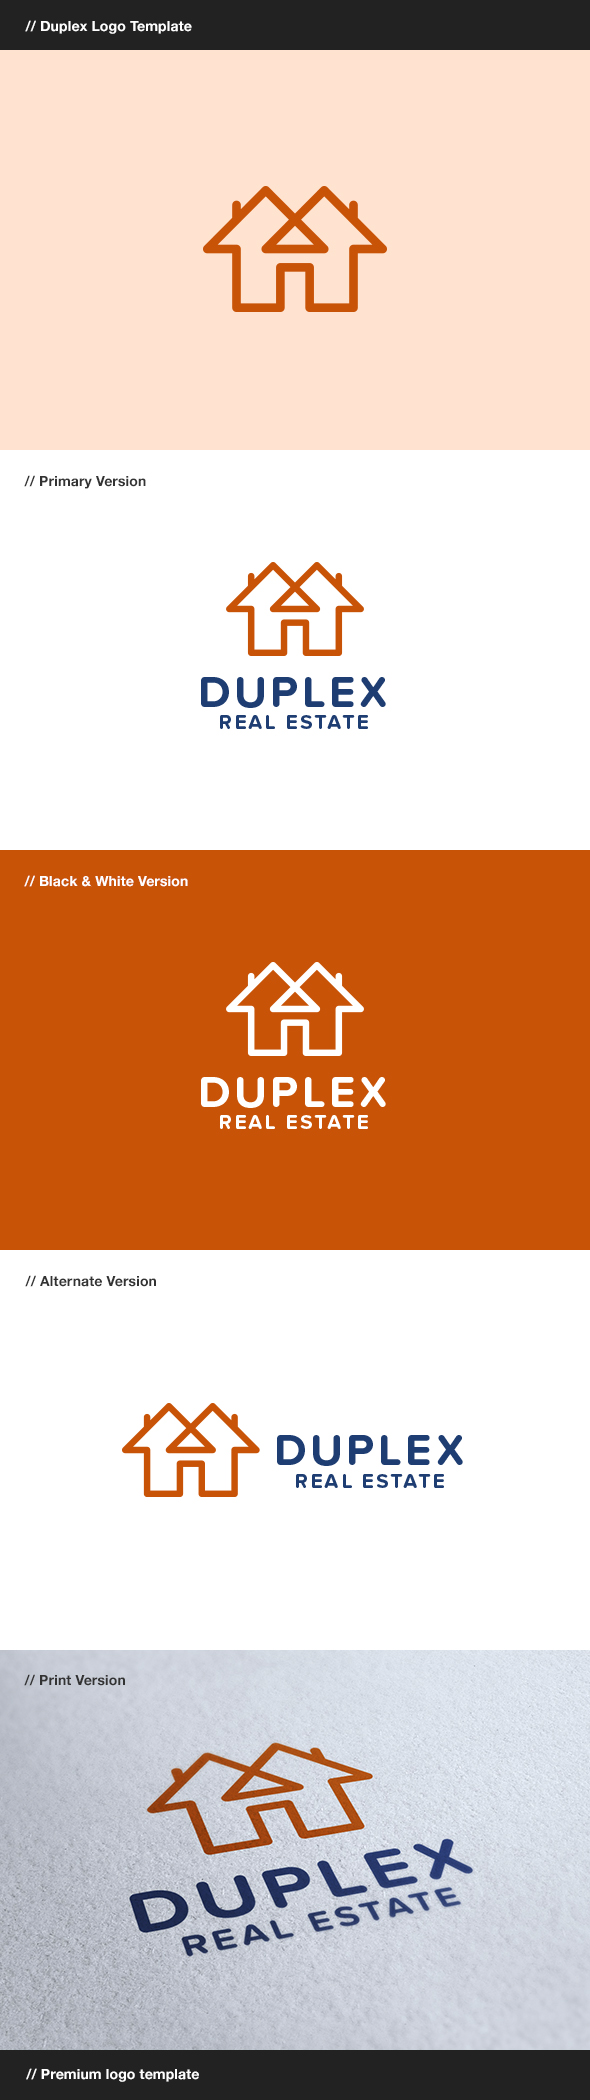 Duplex - Construction & Real Estate Logo